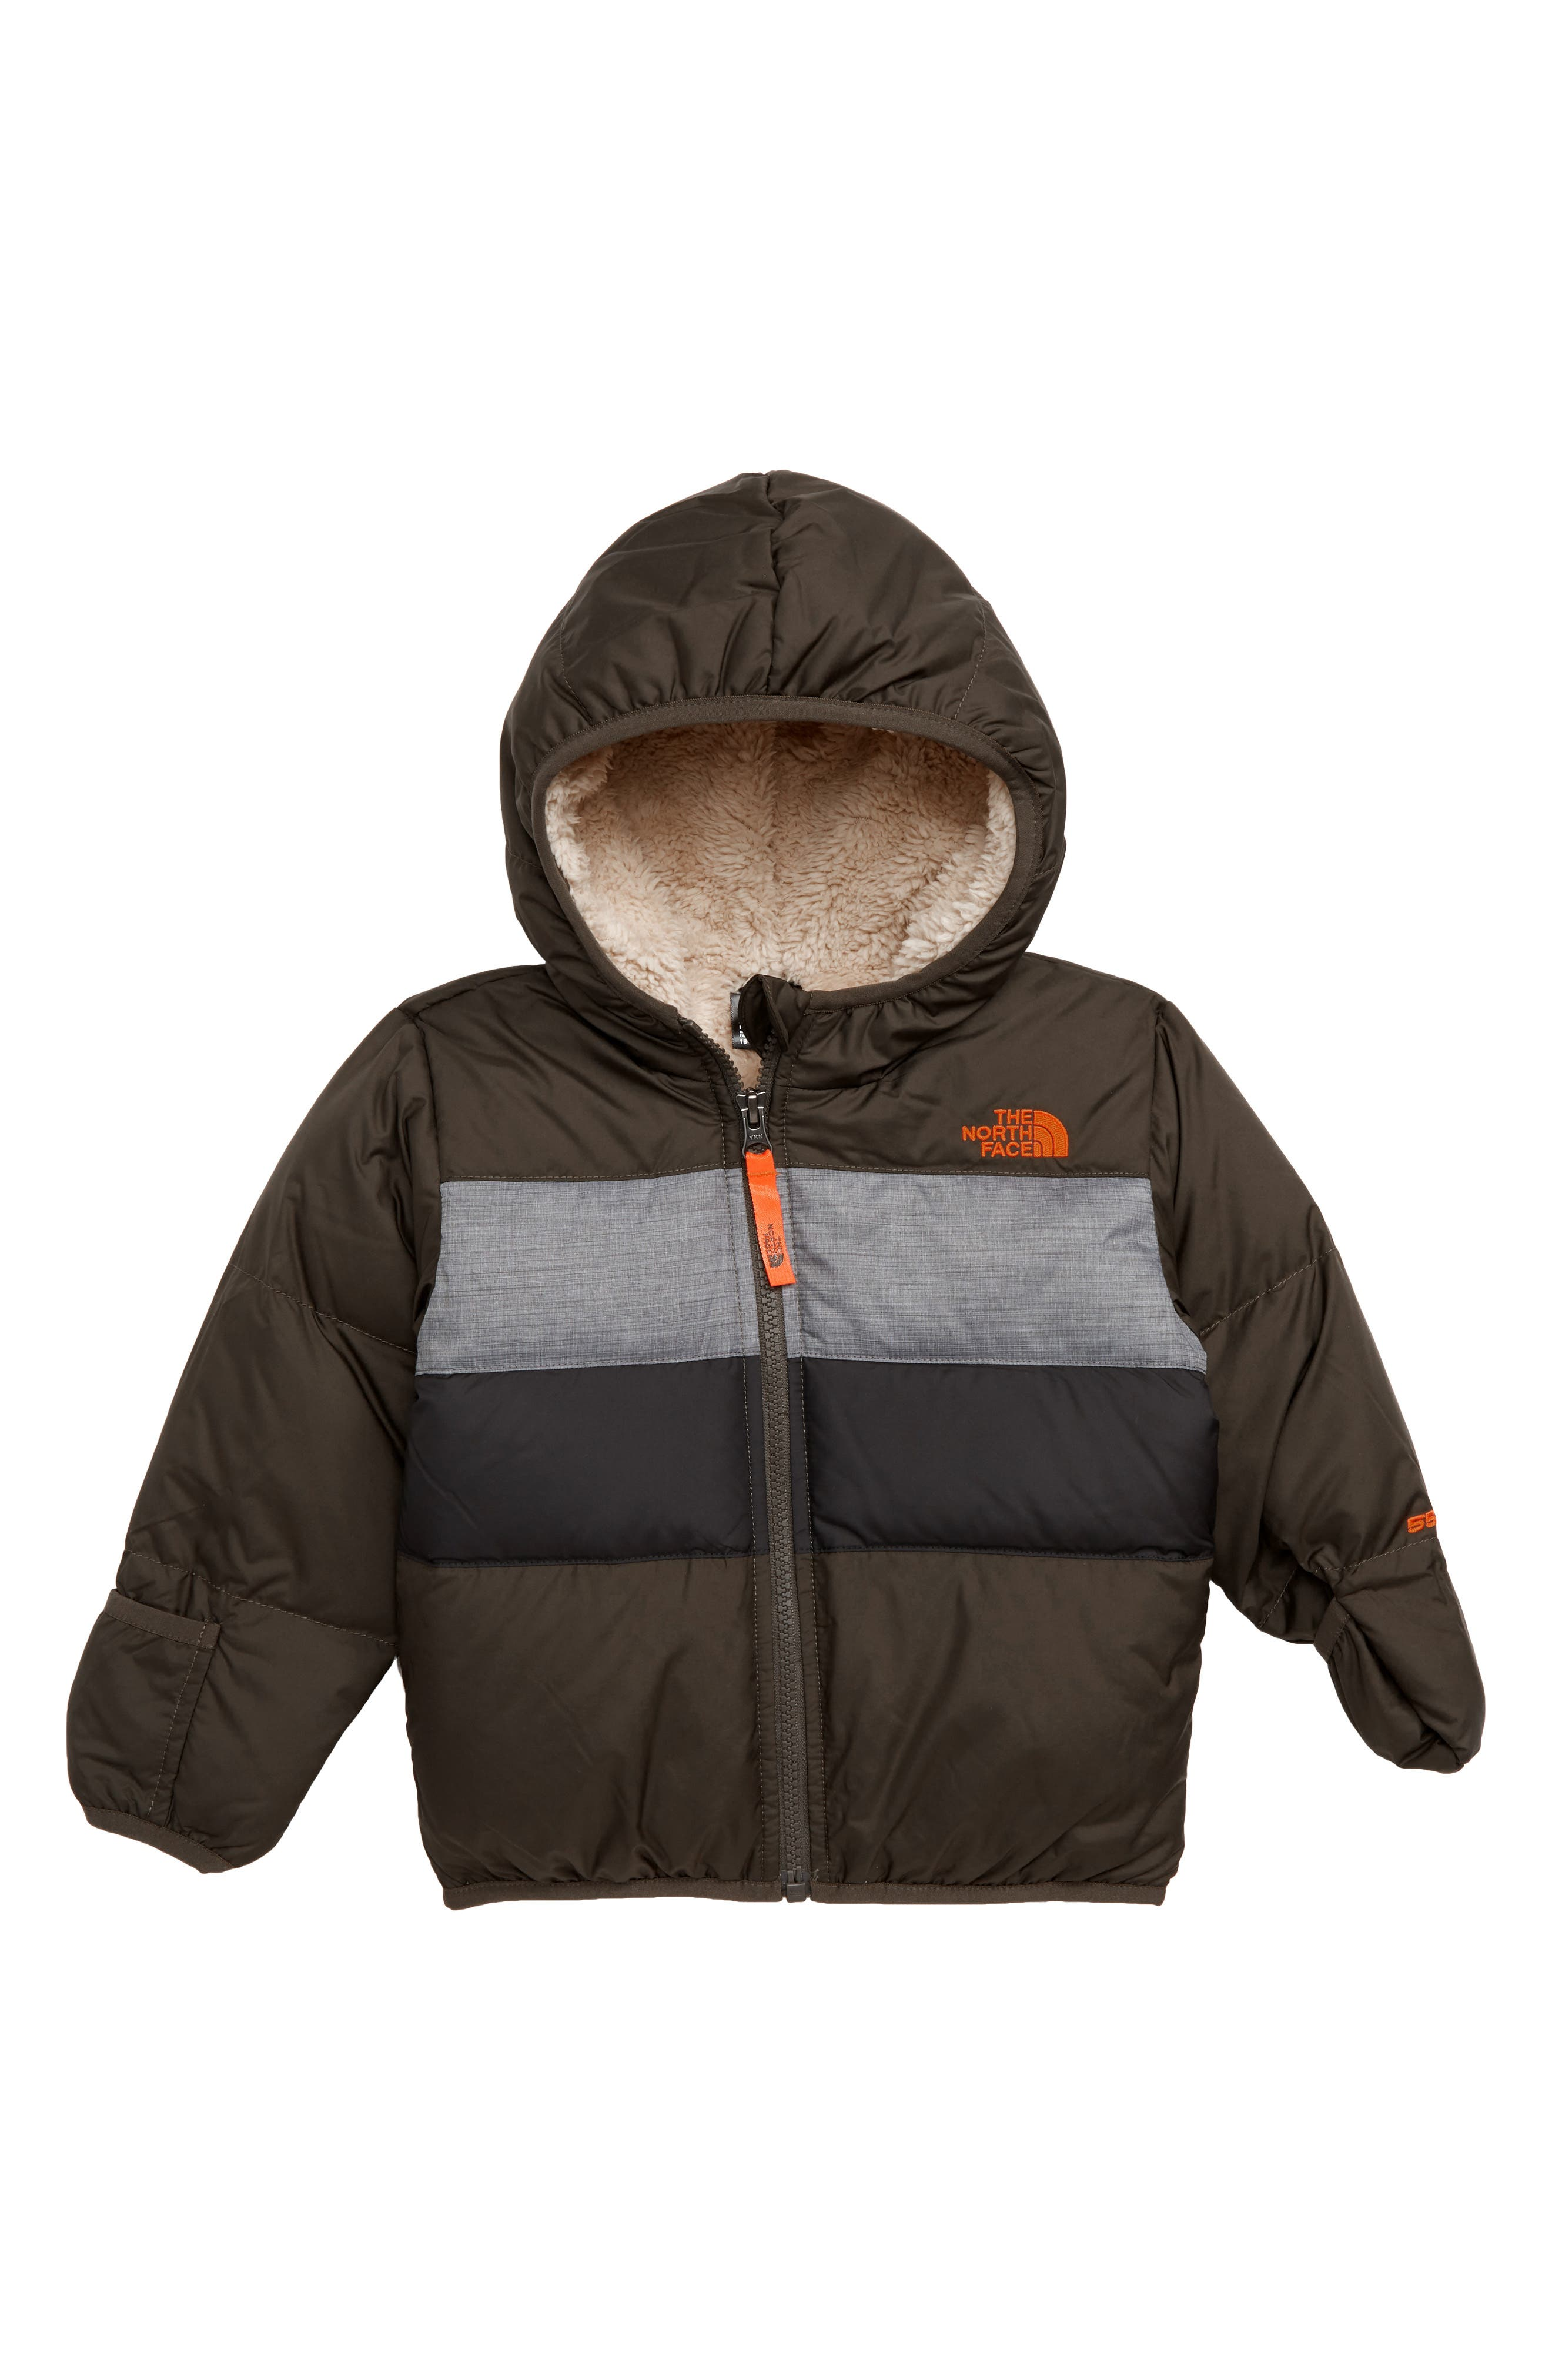 Moondoggy 2.0 Water Repellent Down Jacket,                             Main thumbnail 1, color,                             NEW TAUPE GREEN